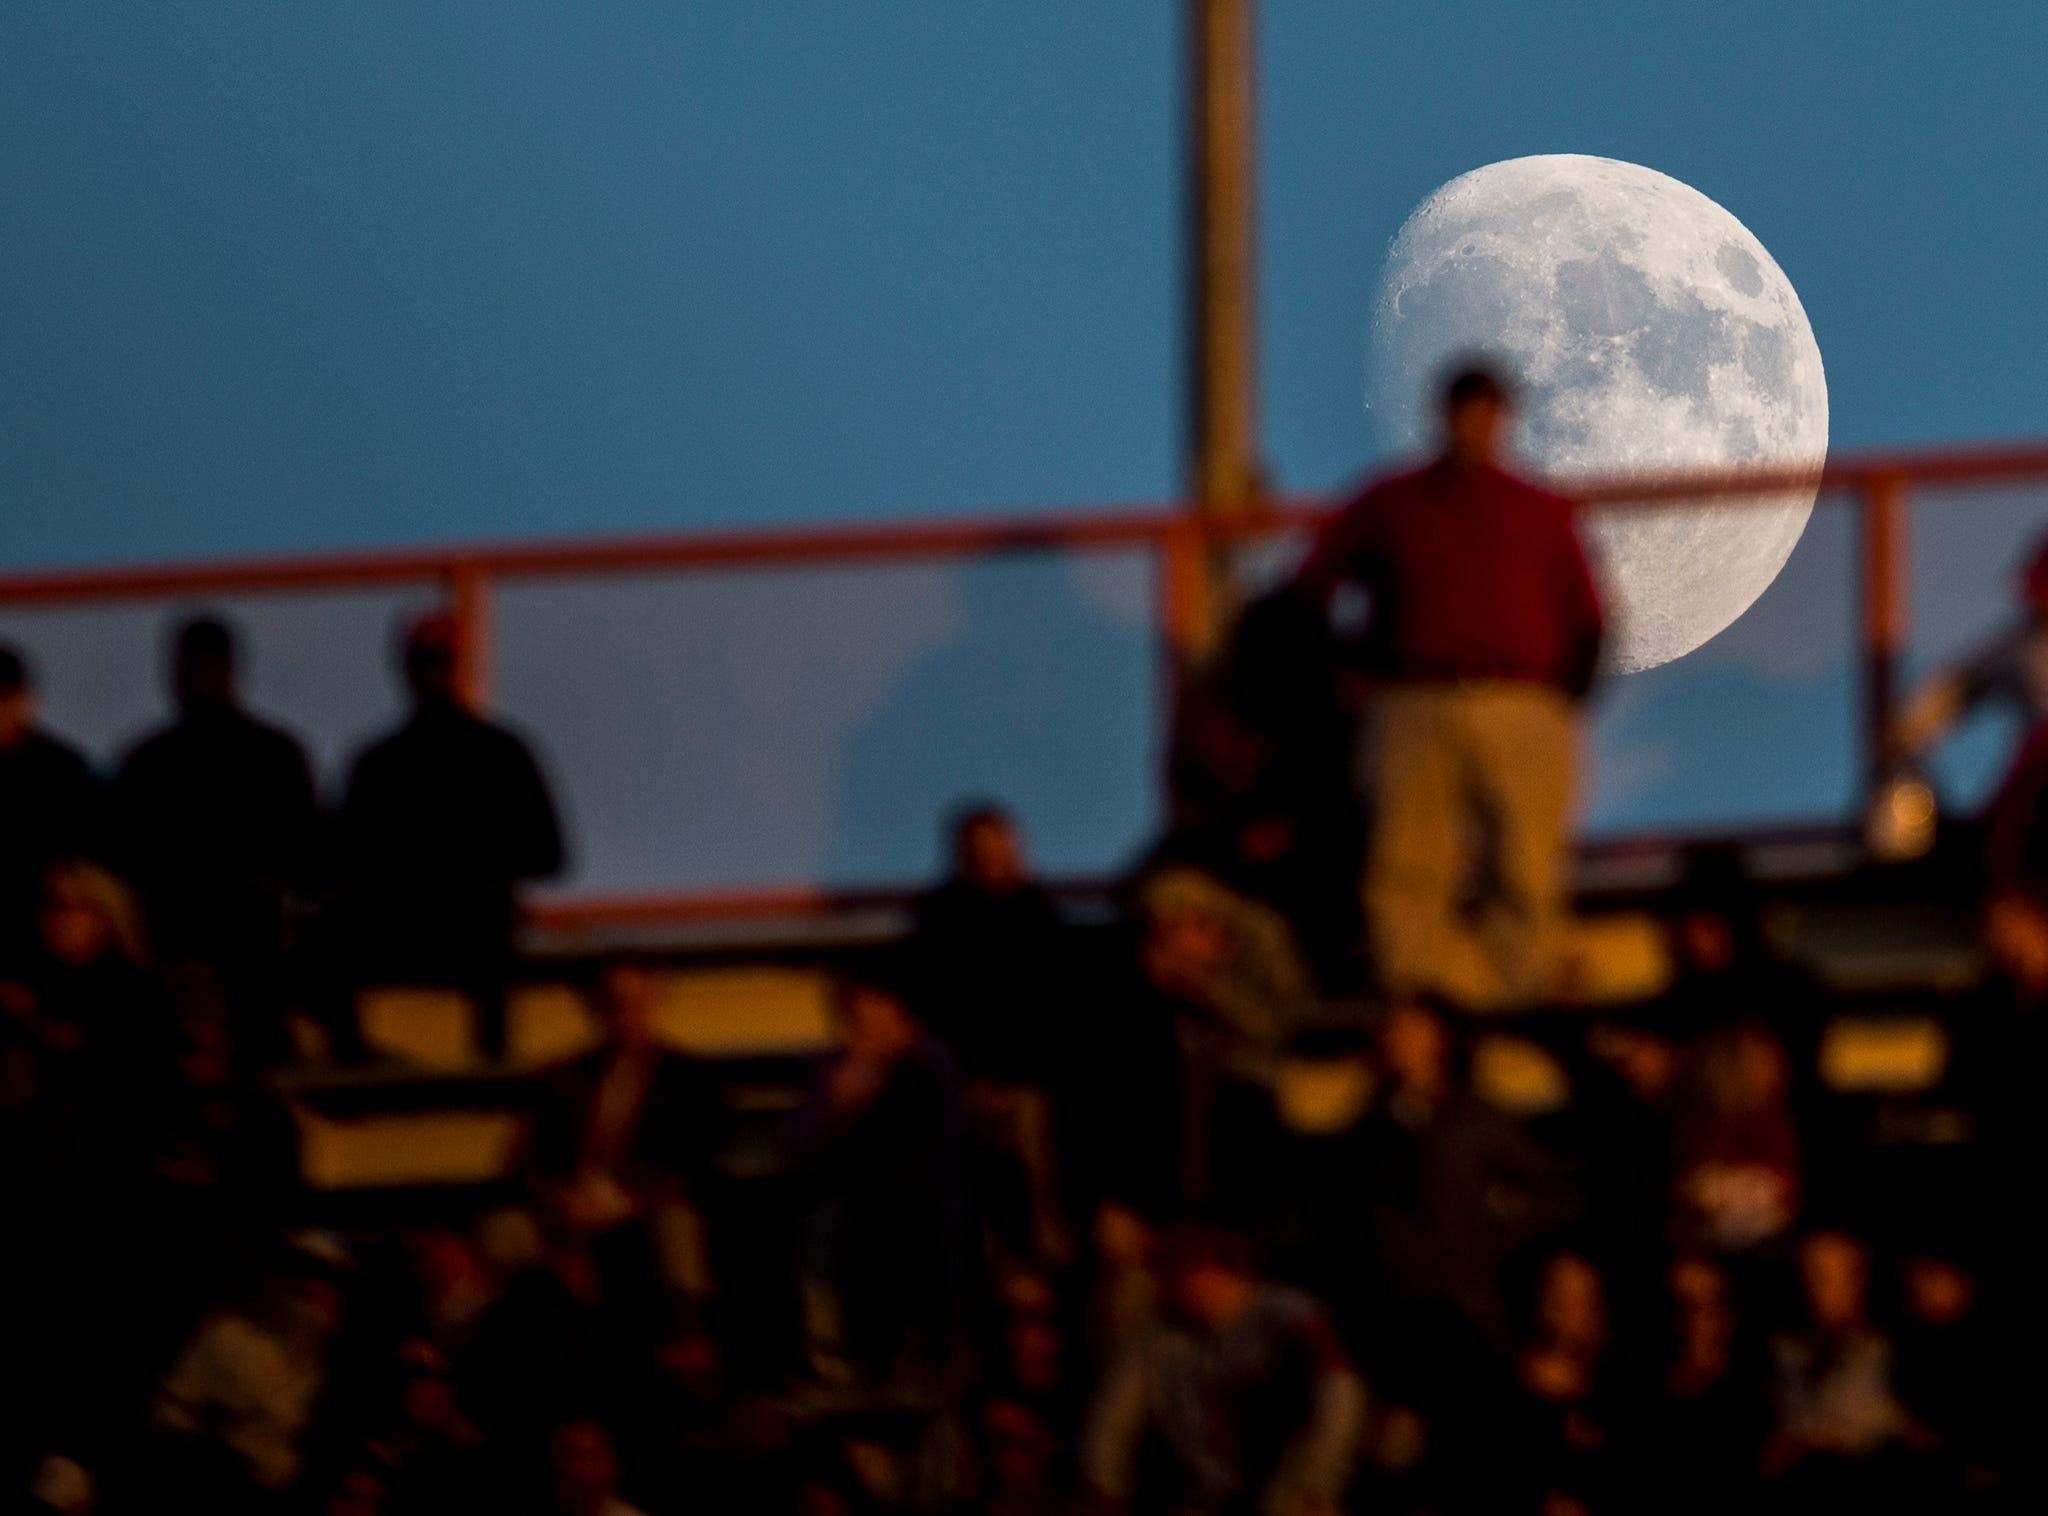 The moon rises behind a fan during a game between Tennessee and Alabama at Neyland Stadium in Knoxville, Tennessee on Saturday, October 20, 2018.